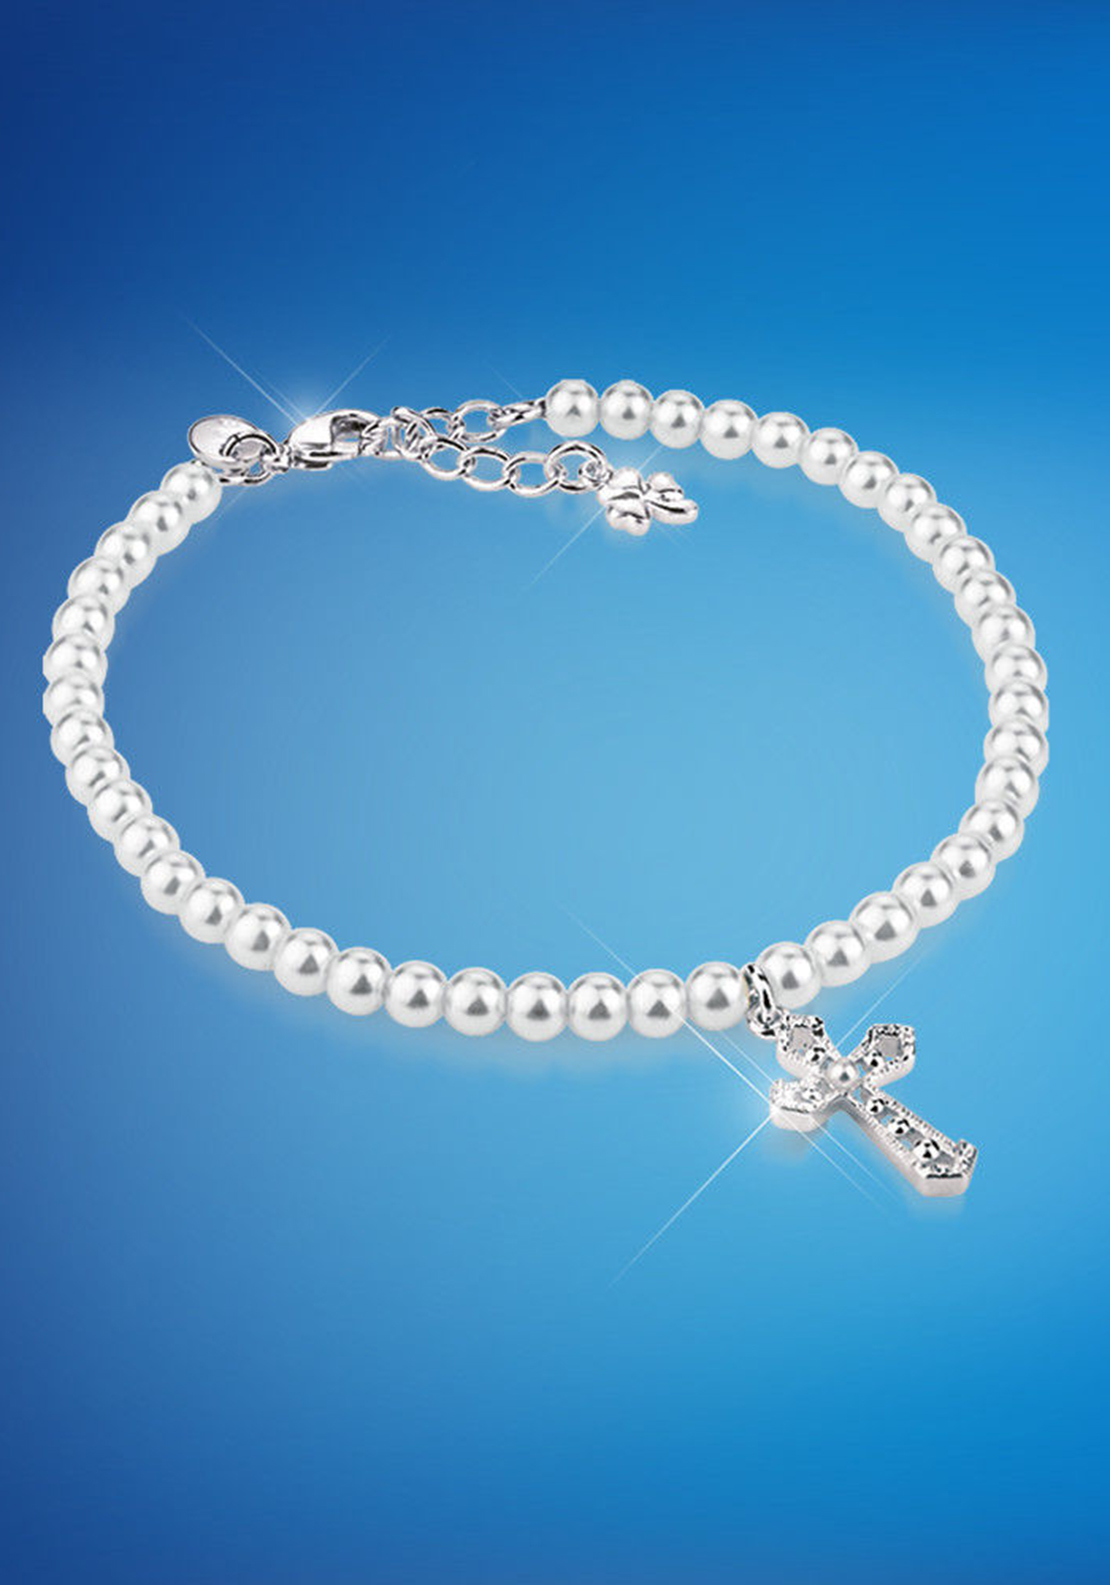 Newbridge First Holy Communion Bracelet with Cross, White